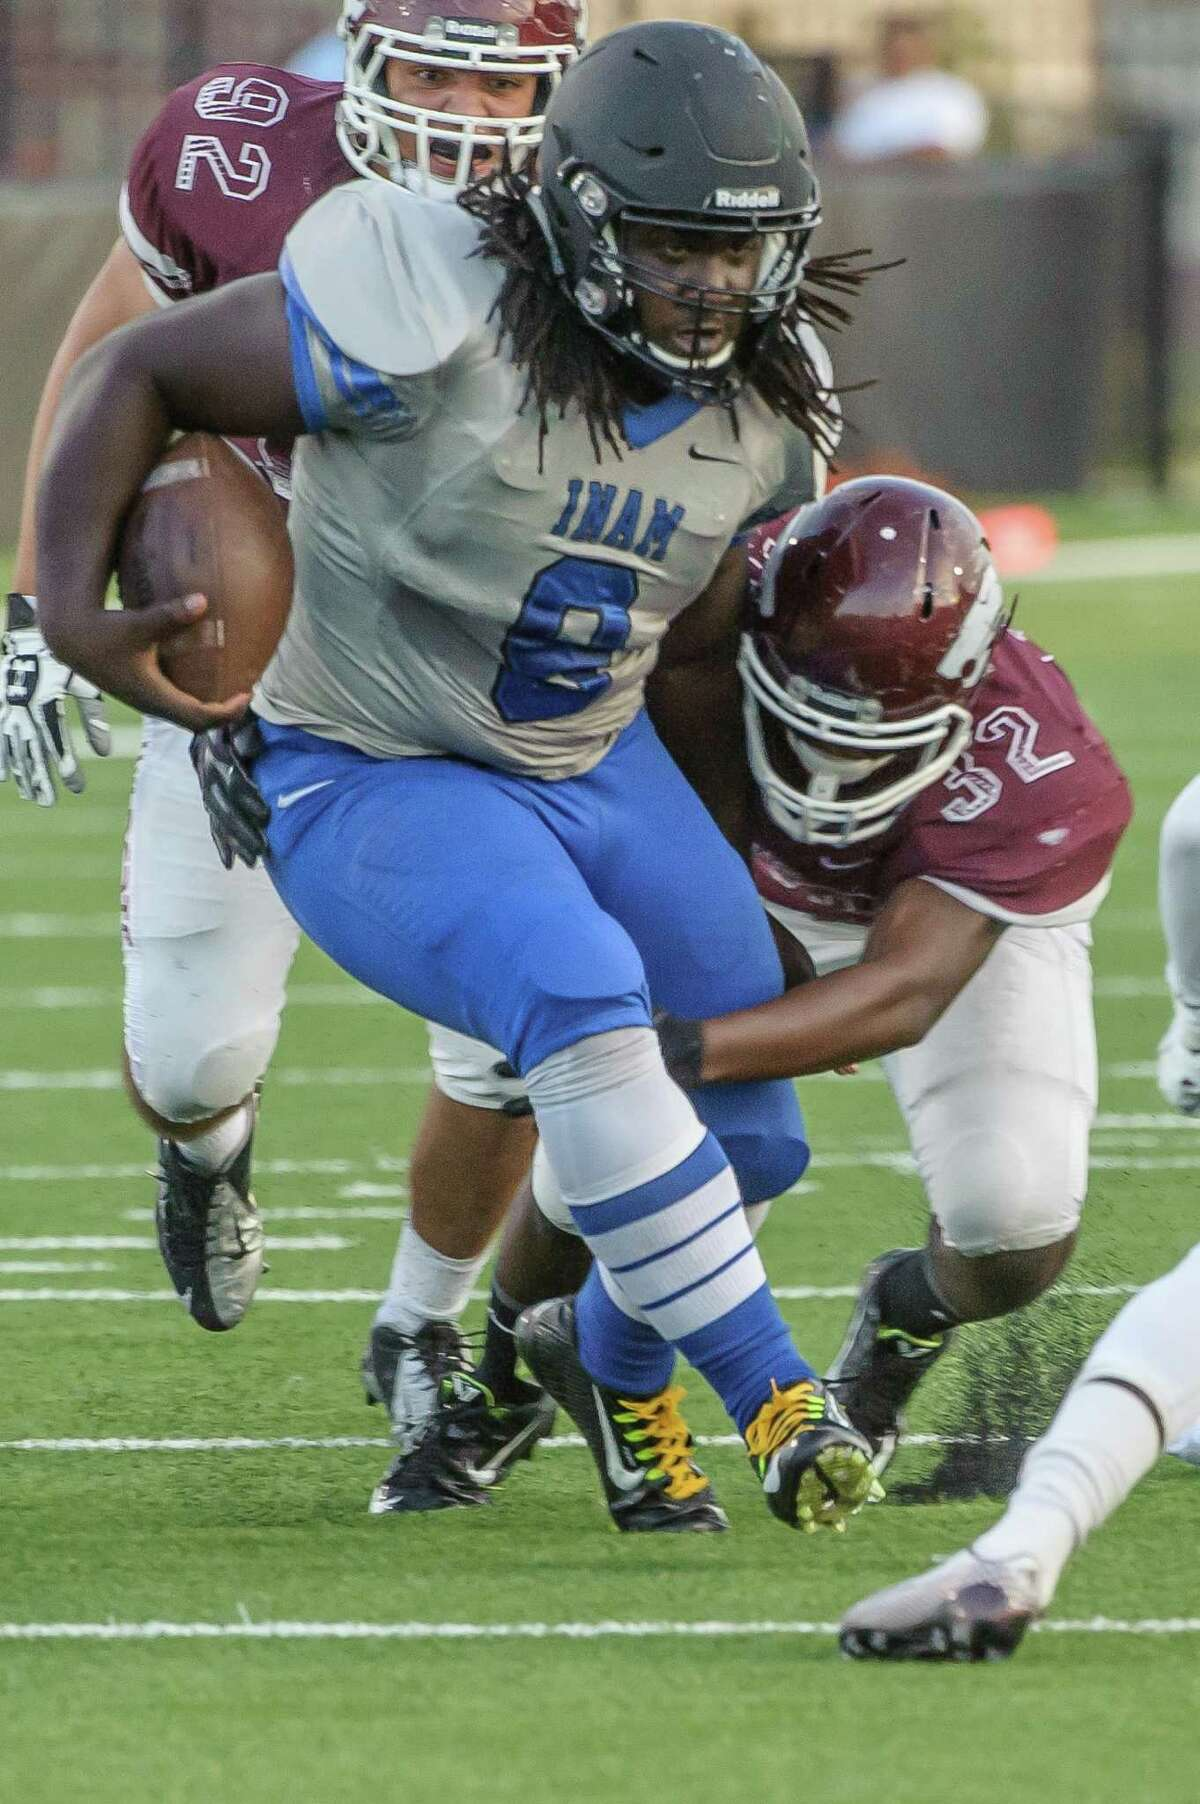 Clear Springs #8 Jared Singleton tries to break away from the Clear Creek's #32 Hisham Walker during the game at Veterans Memorial Stadium 10/23/14during the game at Veterans Memorial Stadium 10/23/14